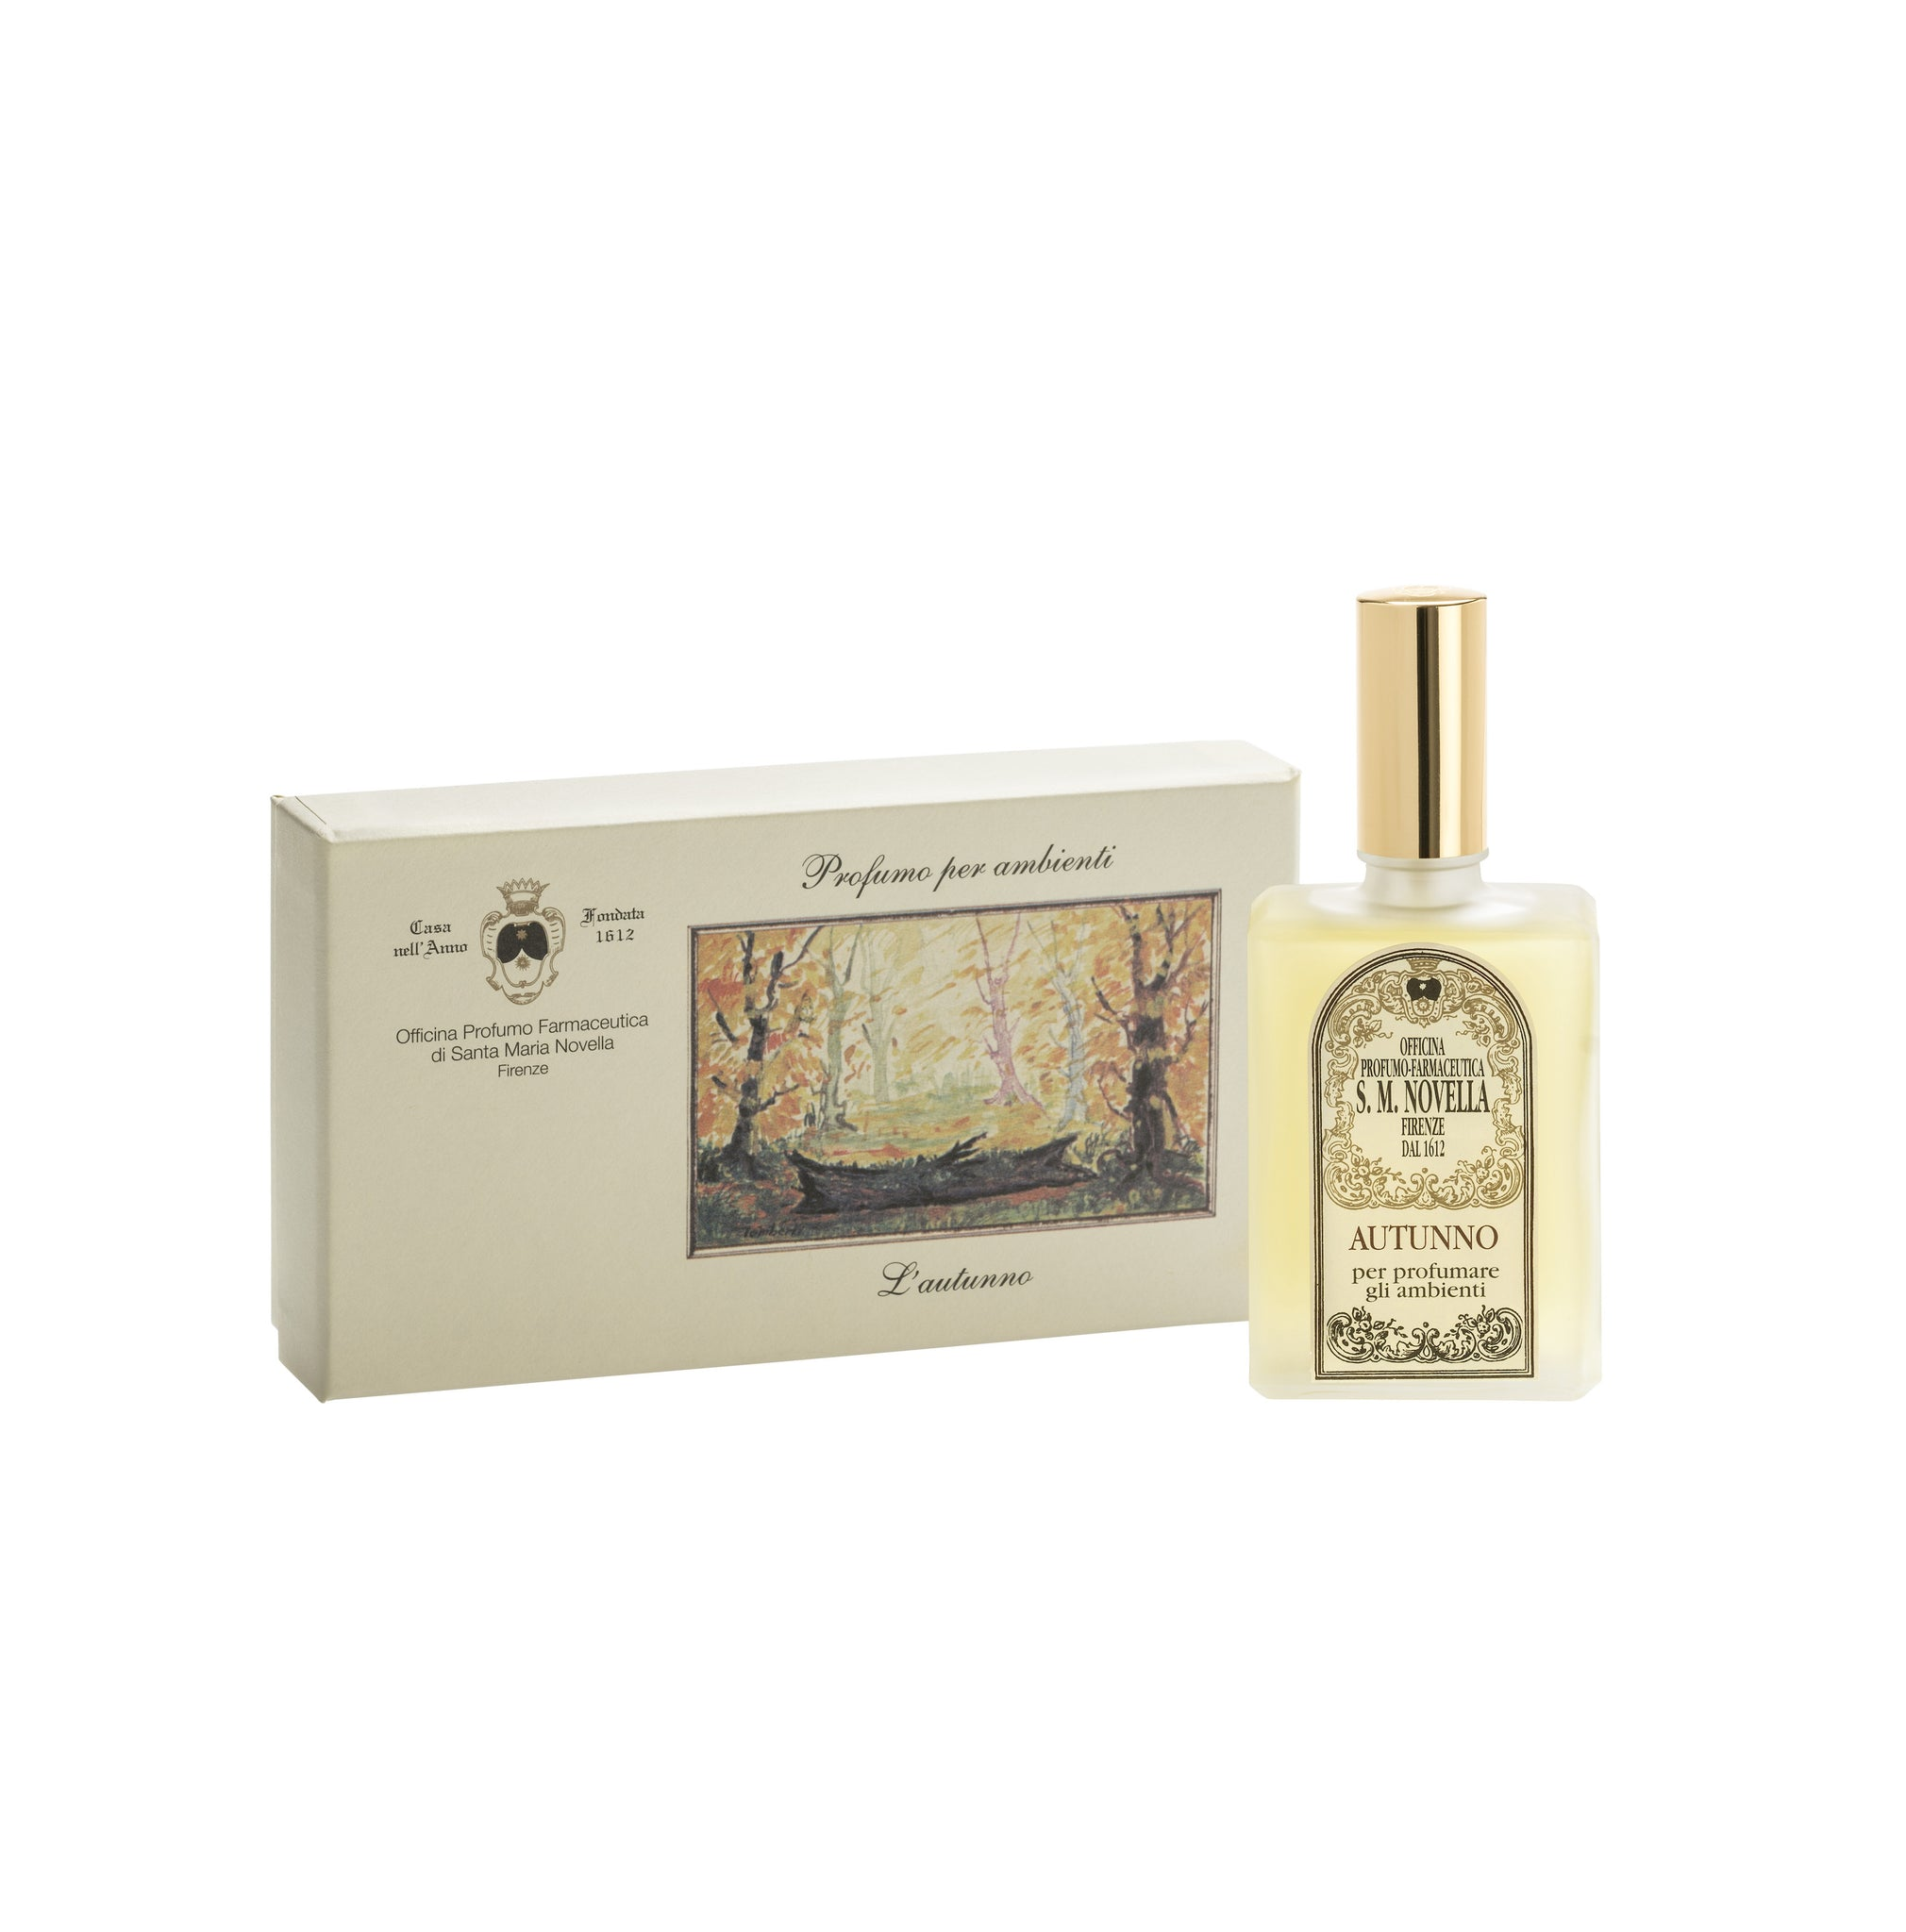 Air Freshener - Autumn (L'autunno), 100ml